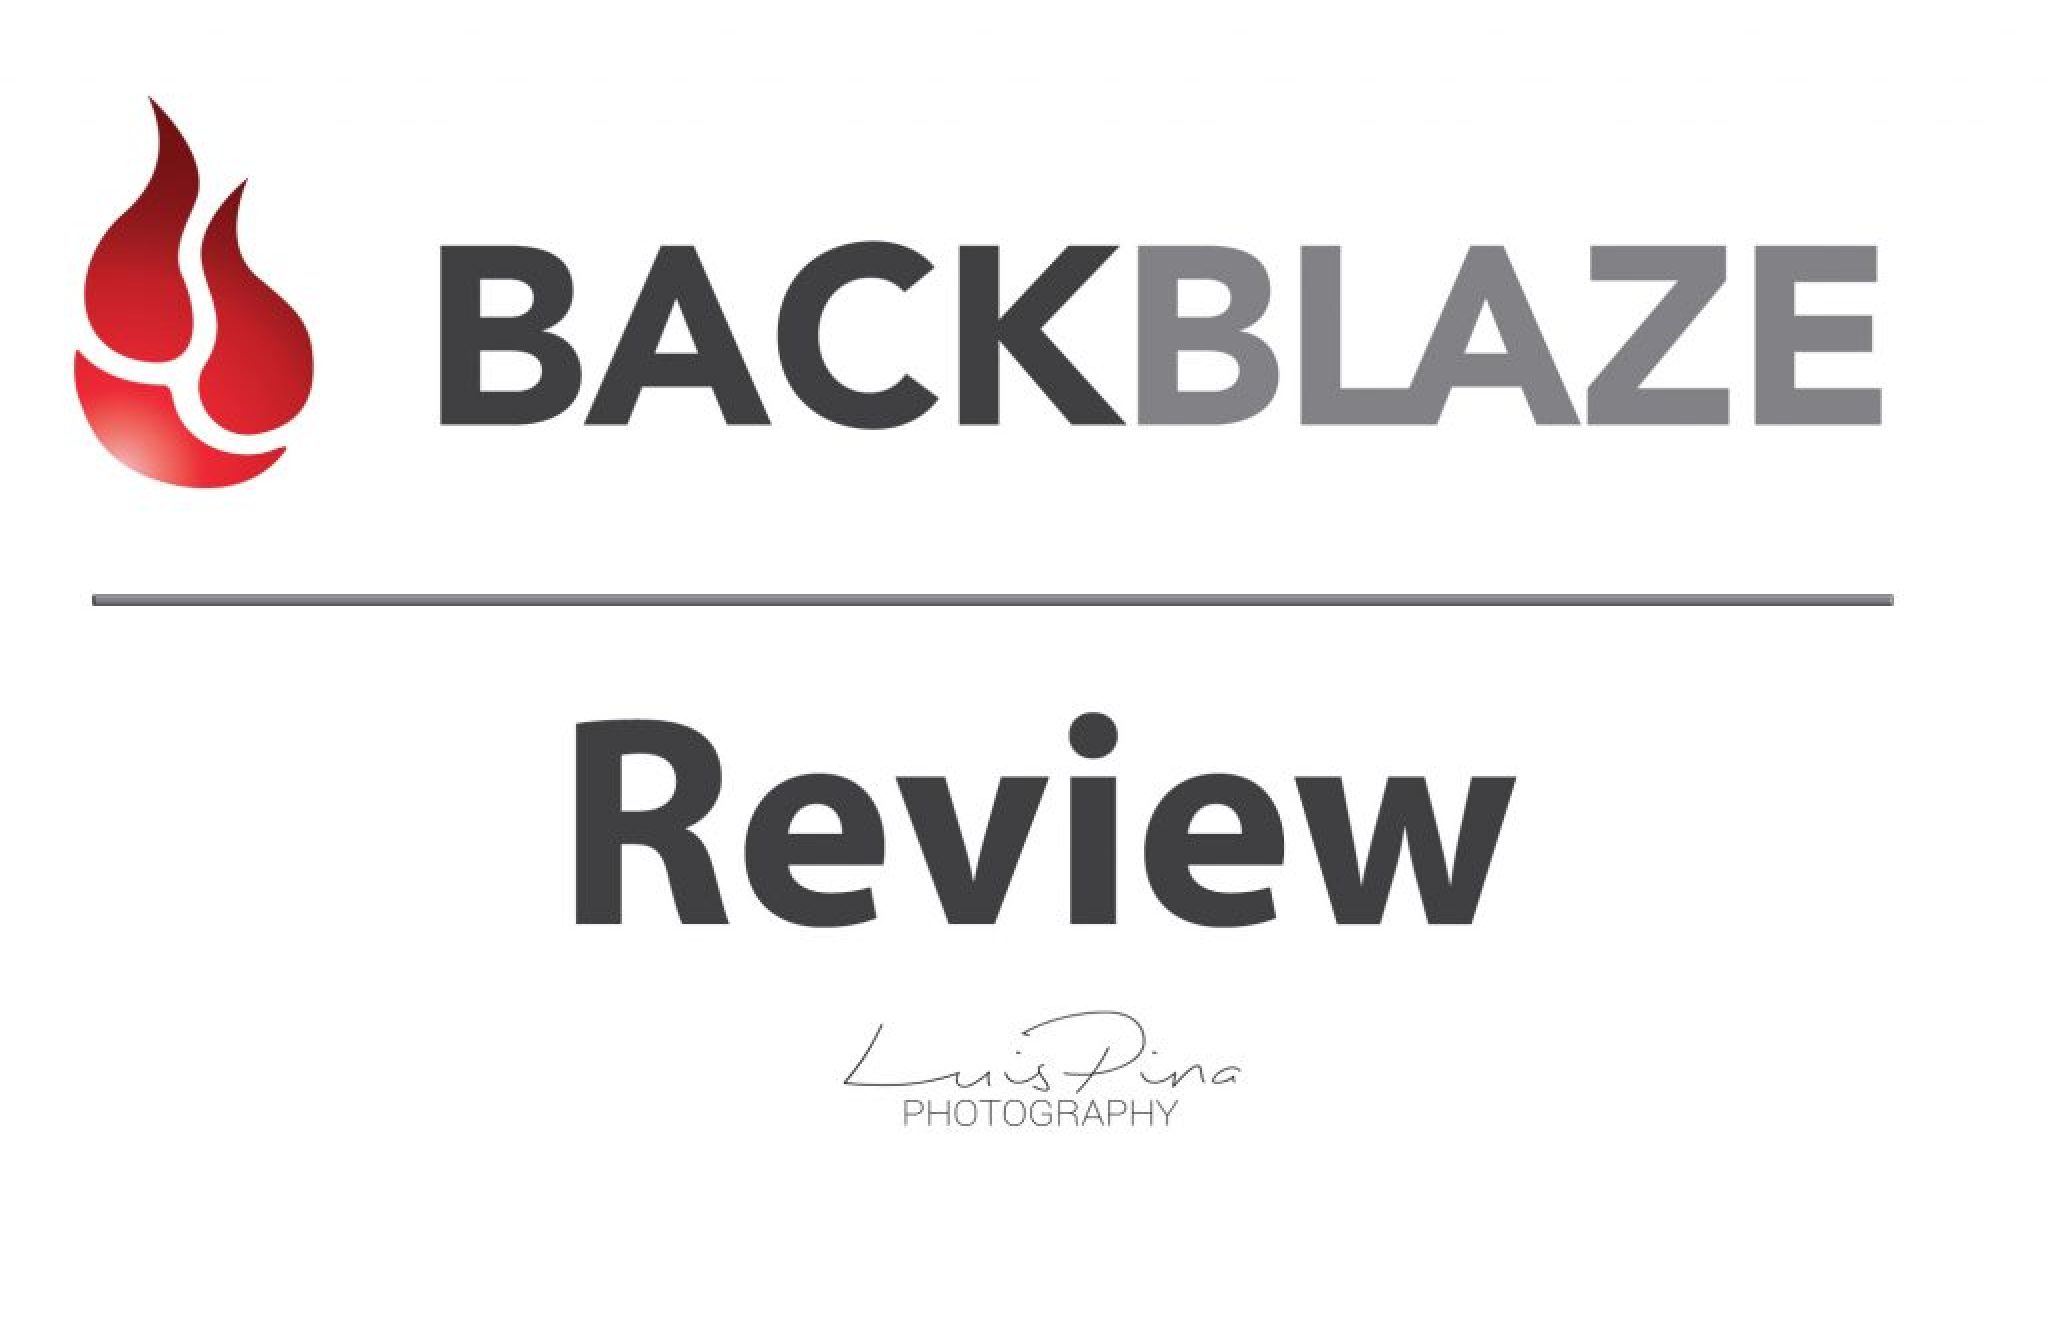 Backblaze Backup Review - Luis Pina Photography